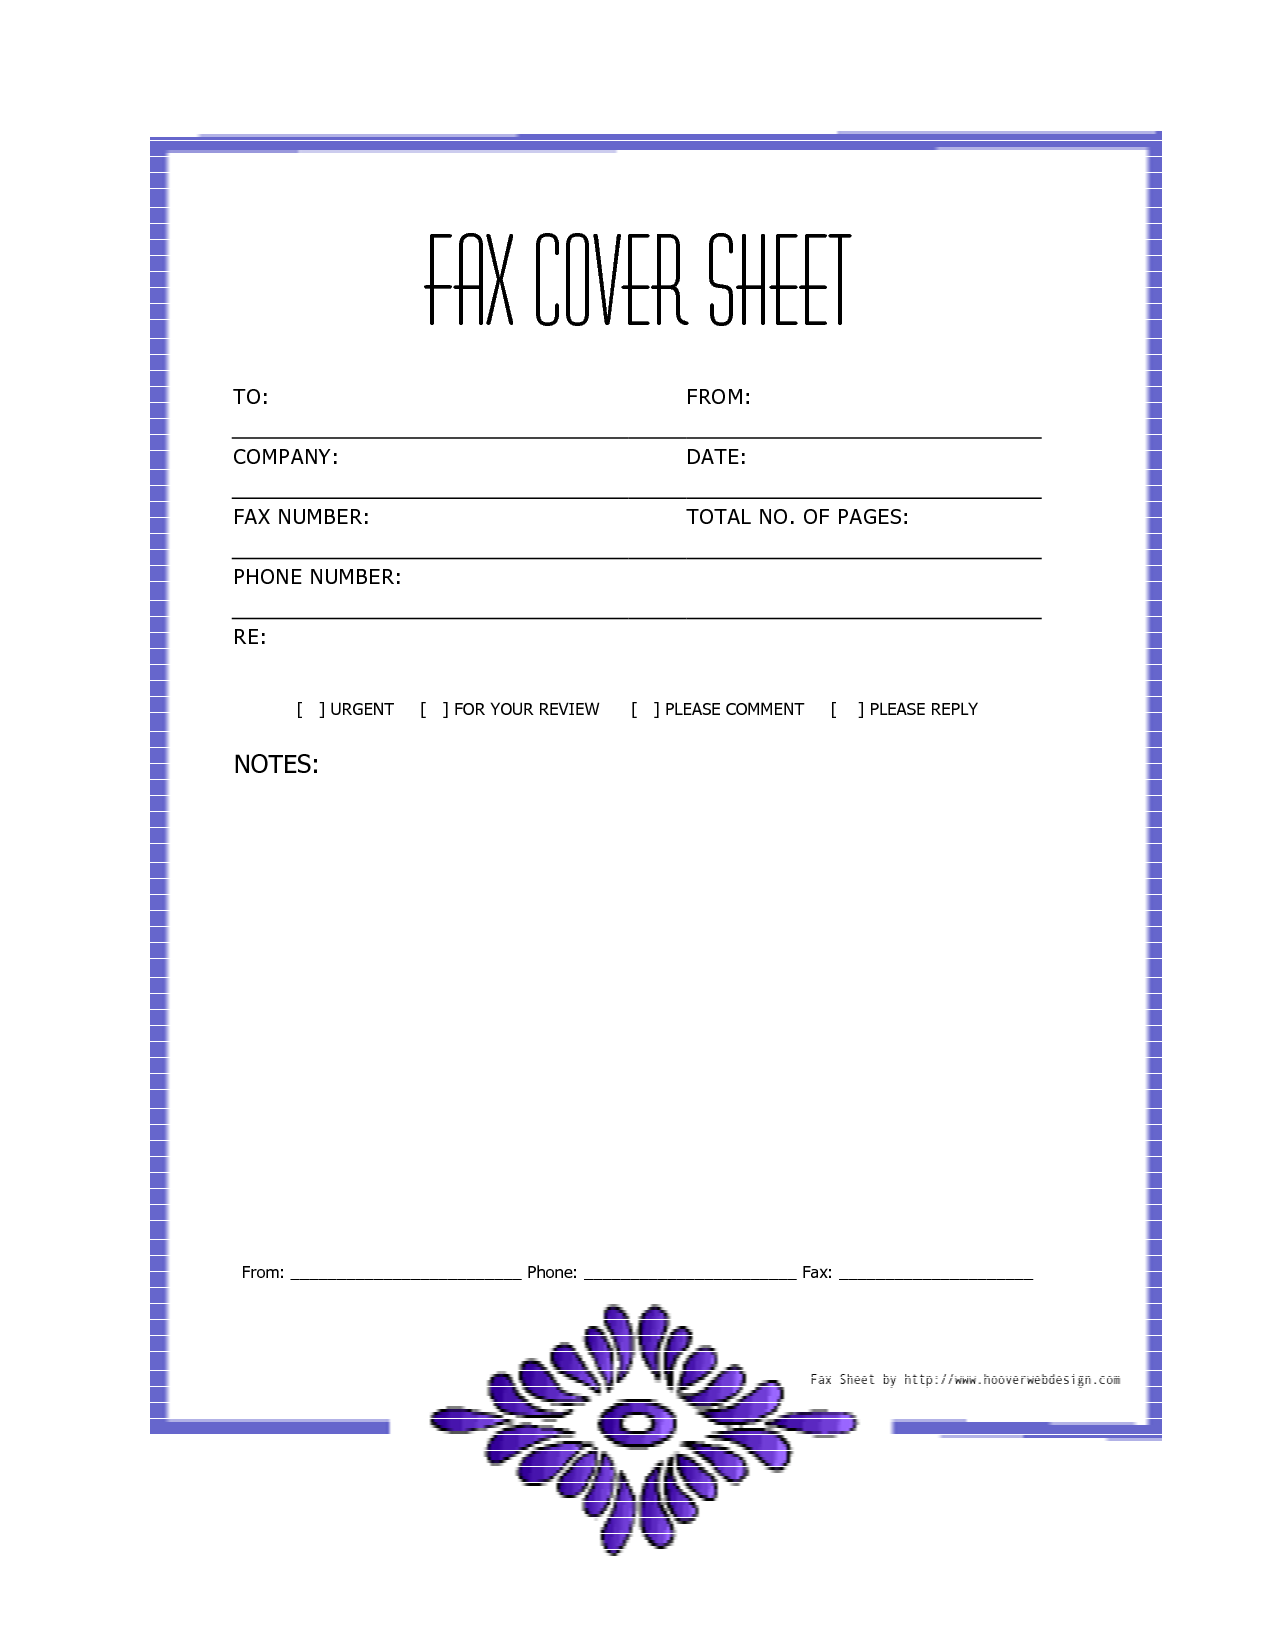 free fax cover sheet template microsoft word koni polycode co